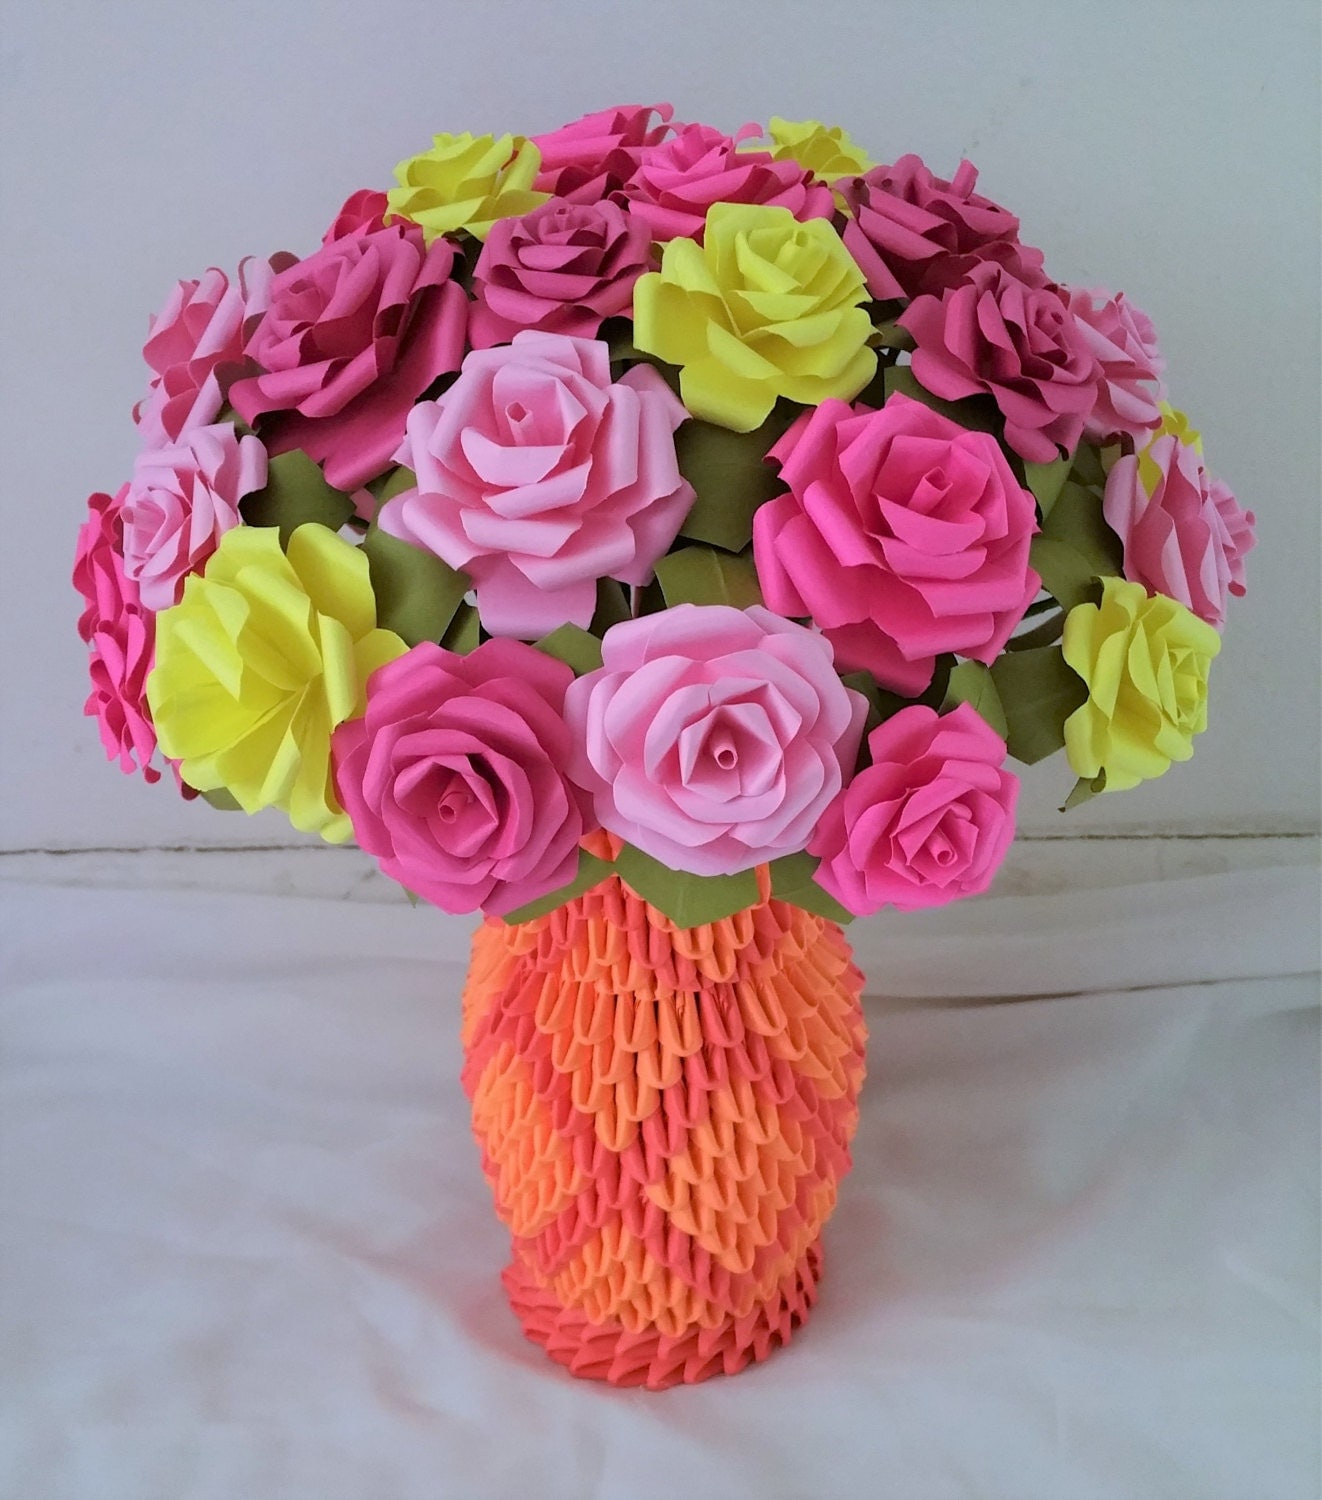 3d Origami Flower Vase / Paper Roses / Centerpiece / Wedding - photo#45